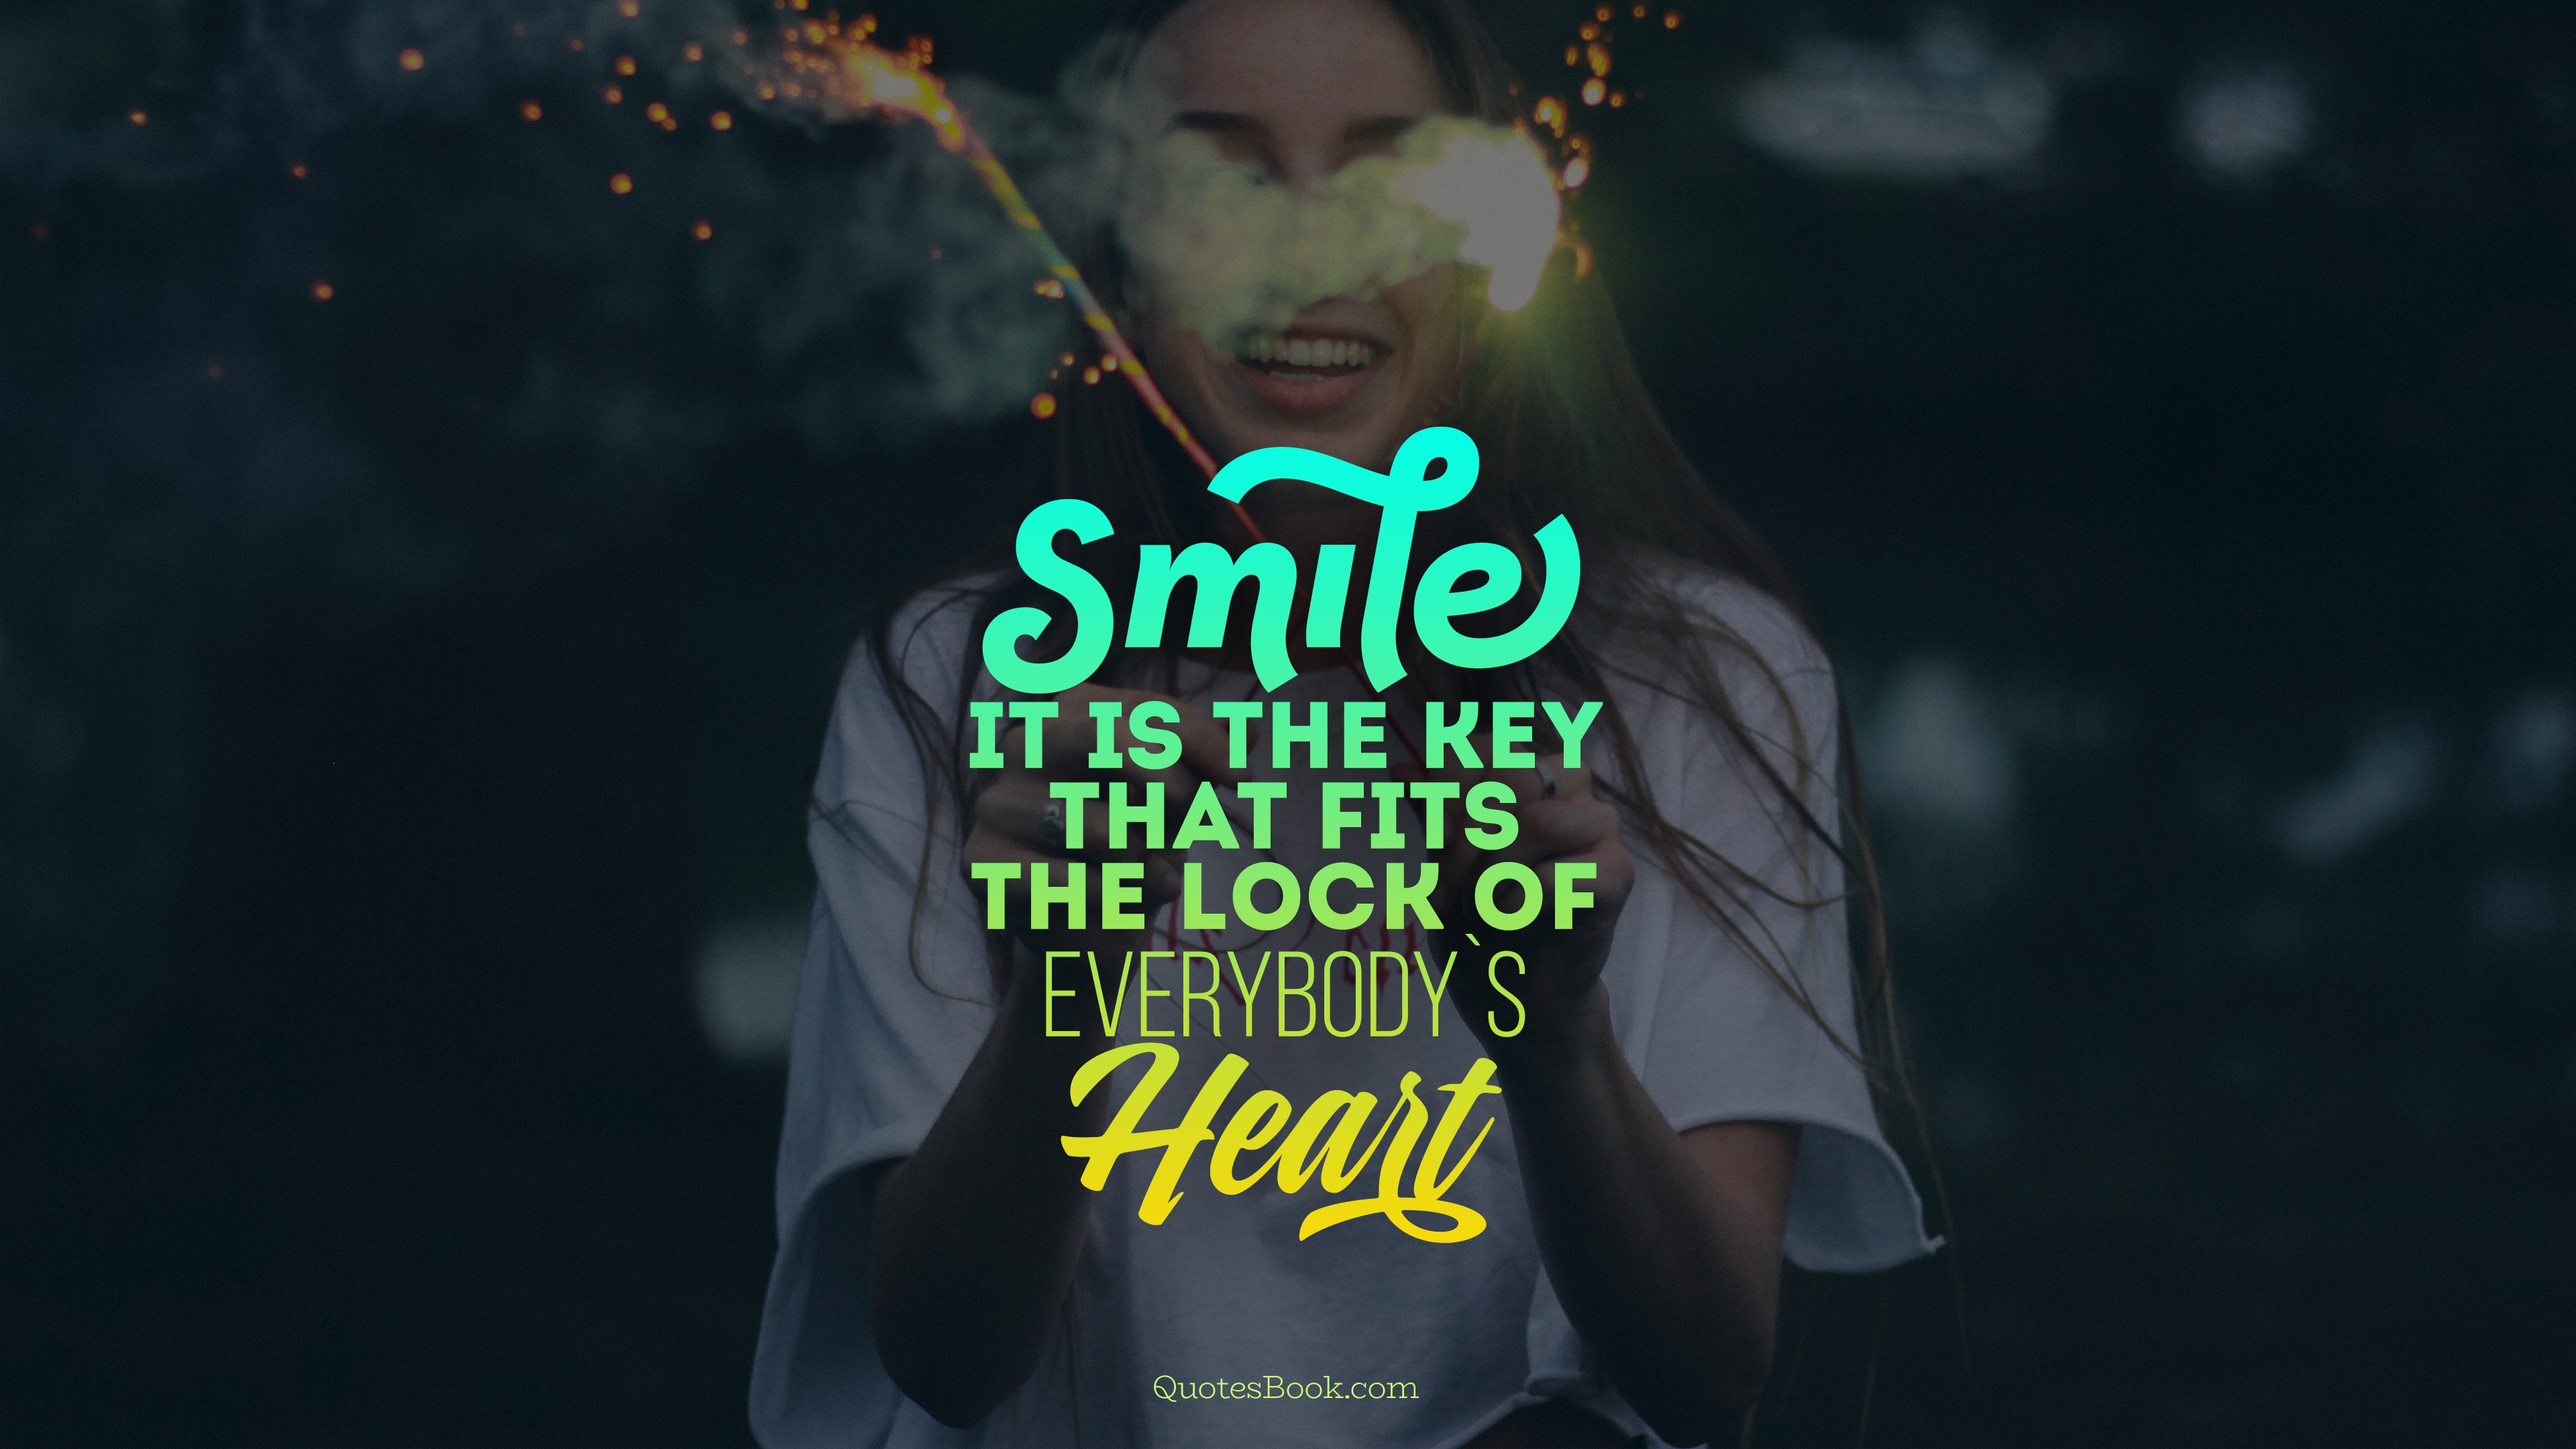 Smile It Is The Key That Fits The Lock Of Everybodys Heart Quotesbook